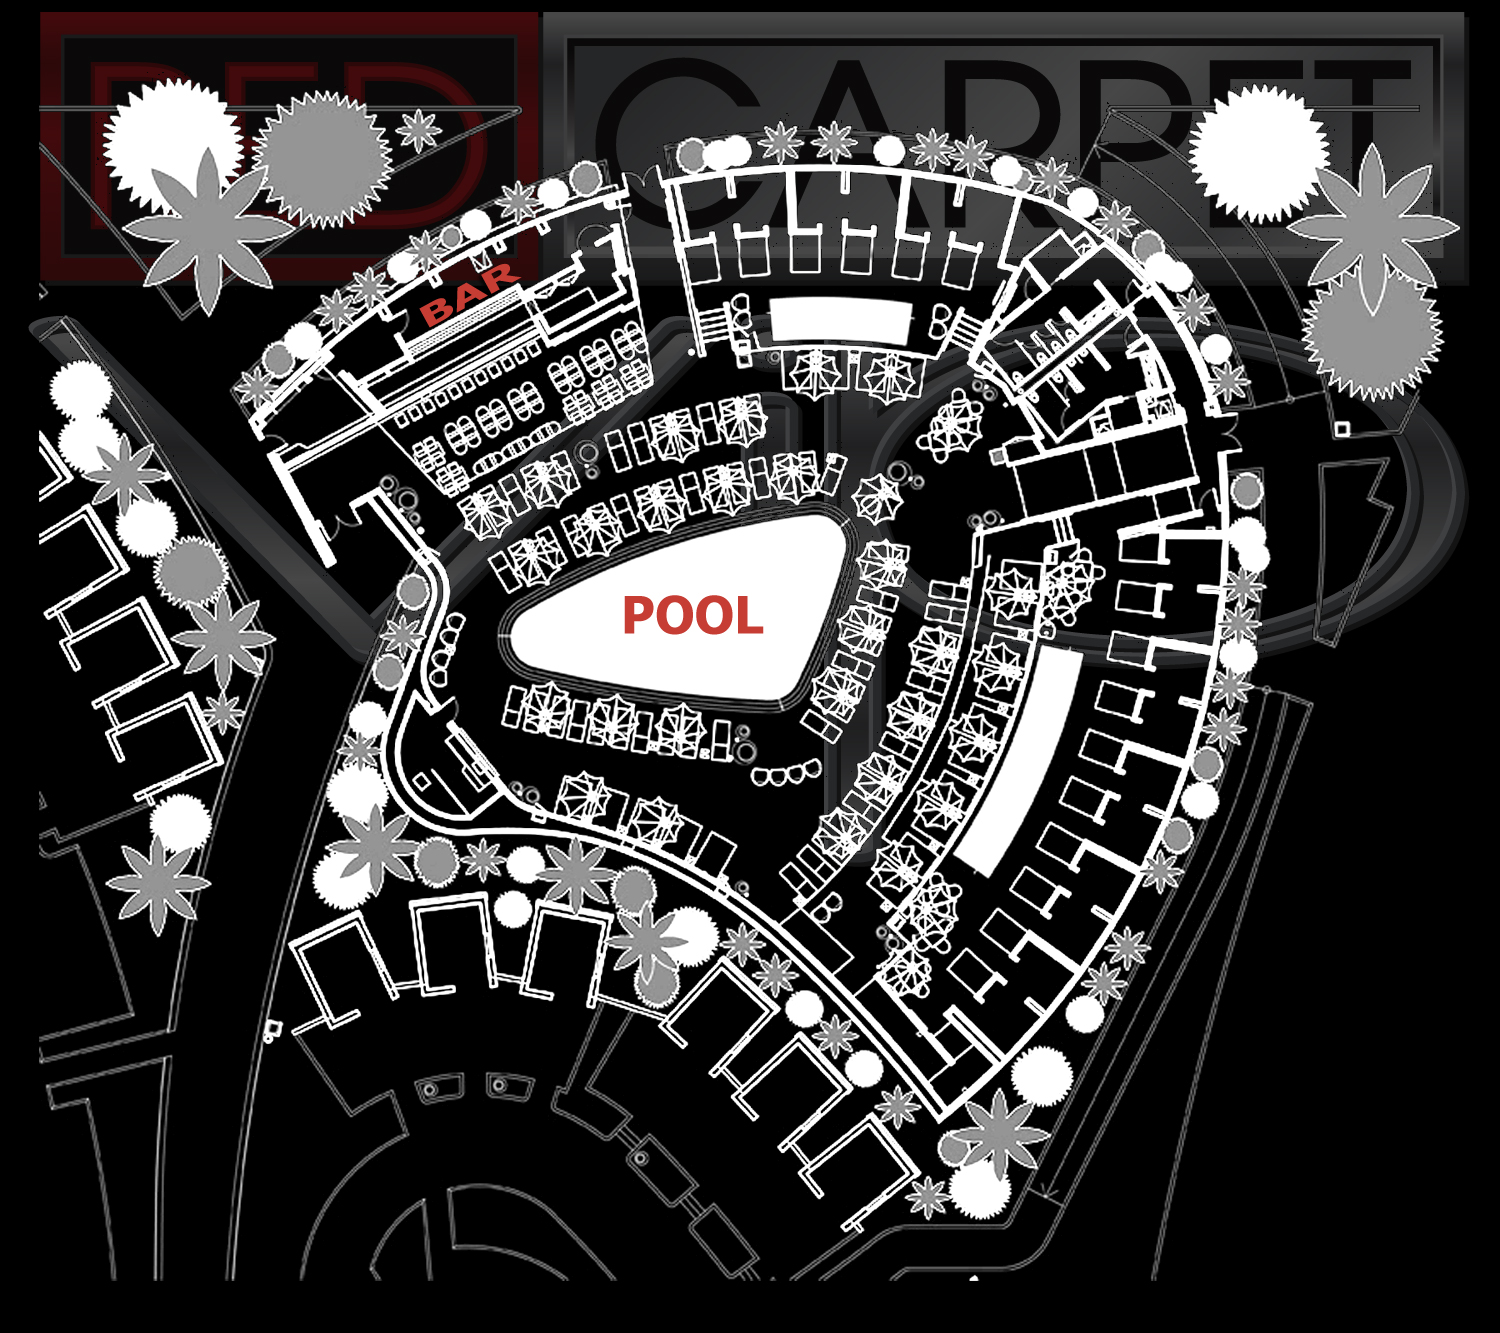 Las Vegas Pool Party Maps Red Carpet Vip